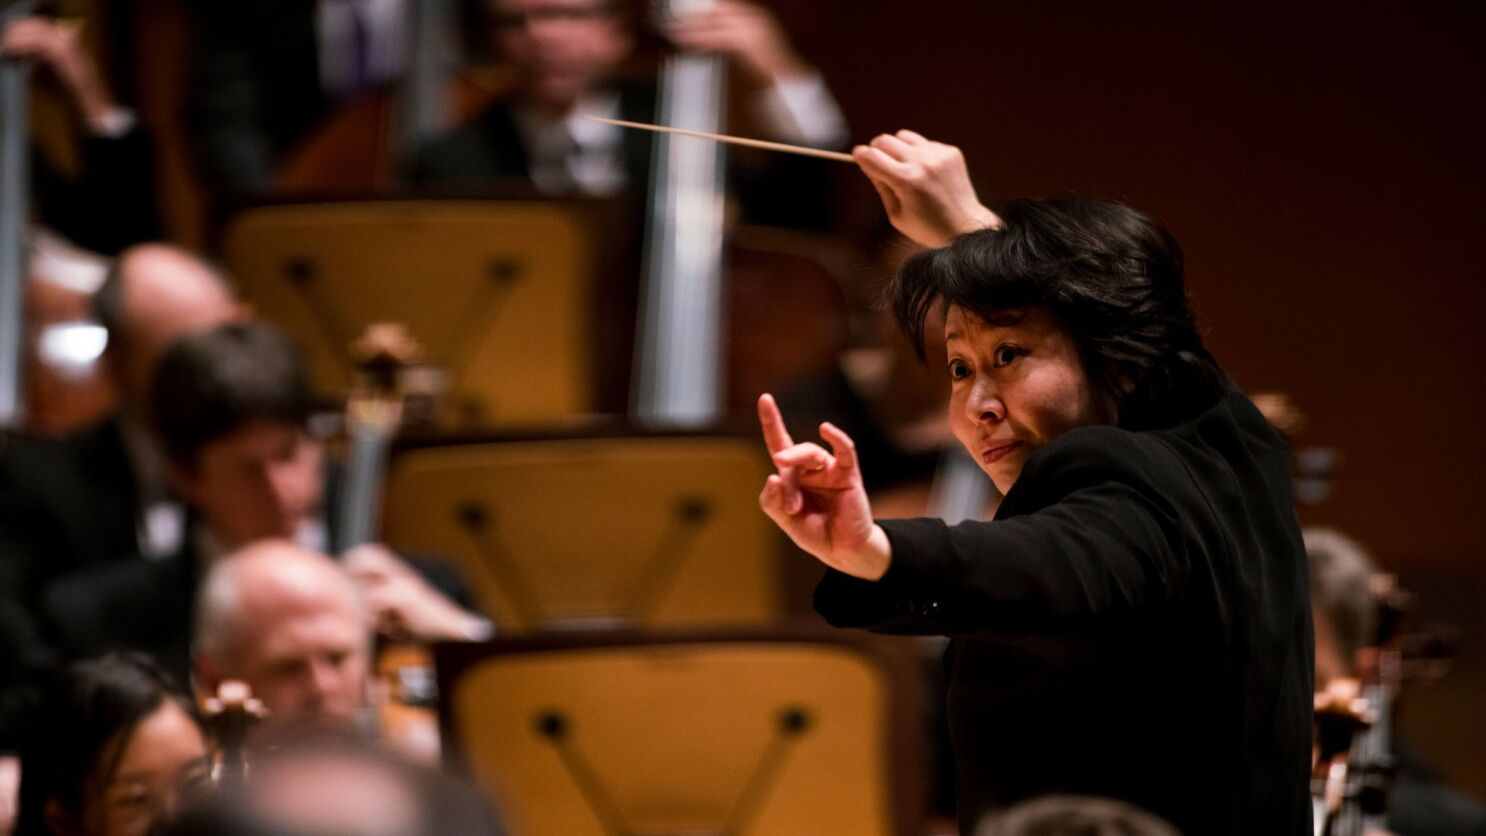 Classical music in L.A. this week: LA Phil performs Beethoven's Ninth at the Hollywood Bowl